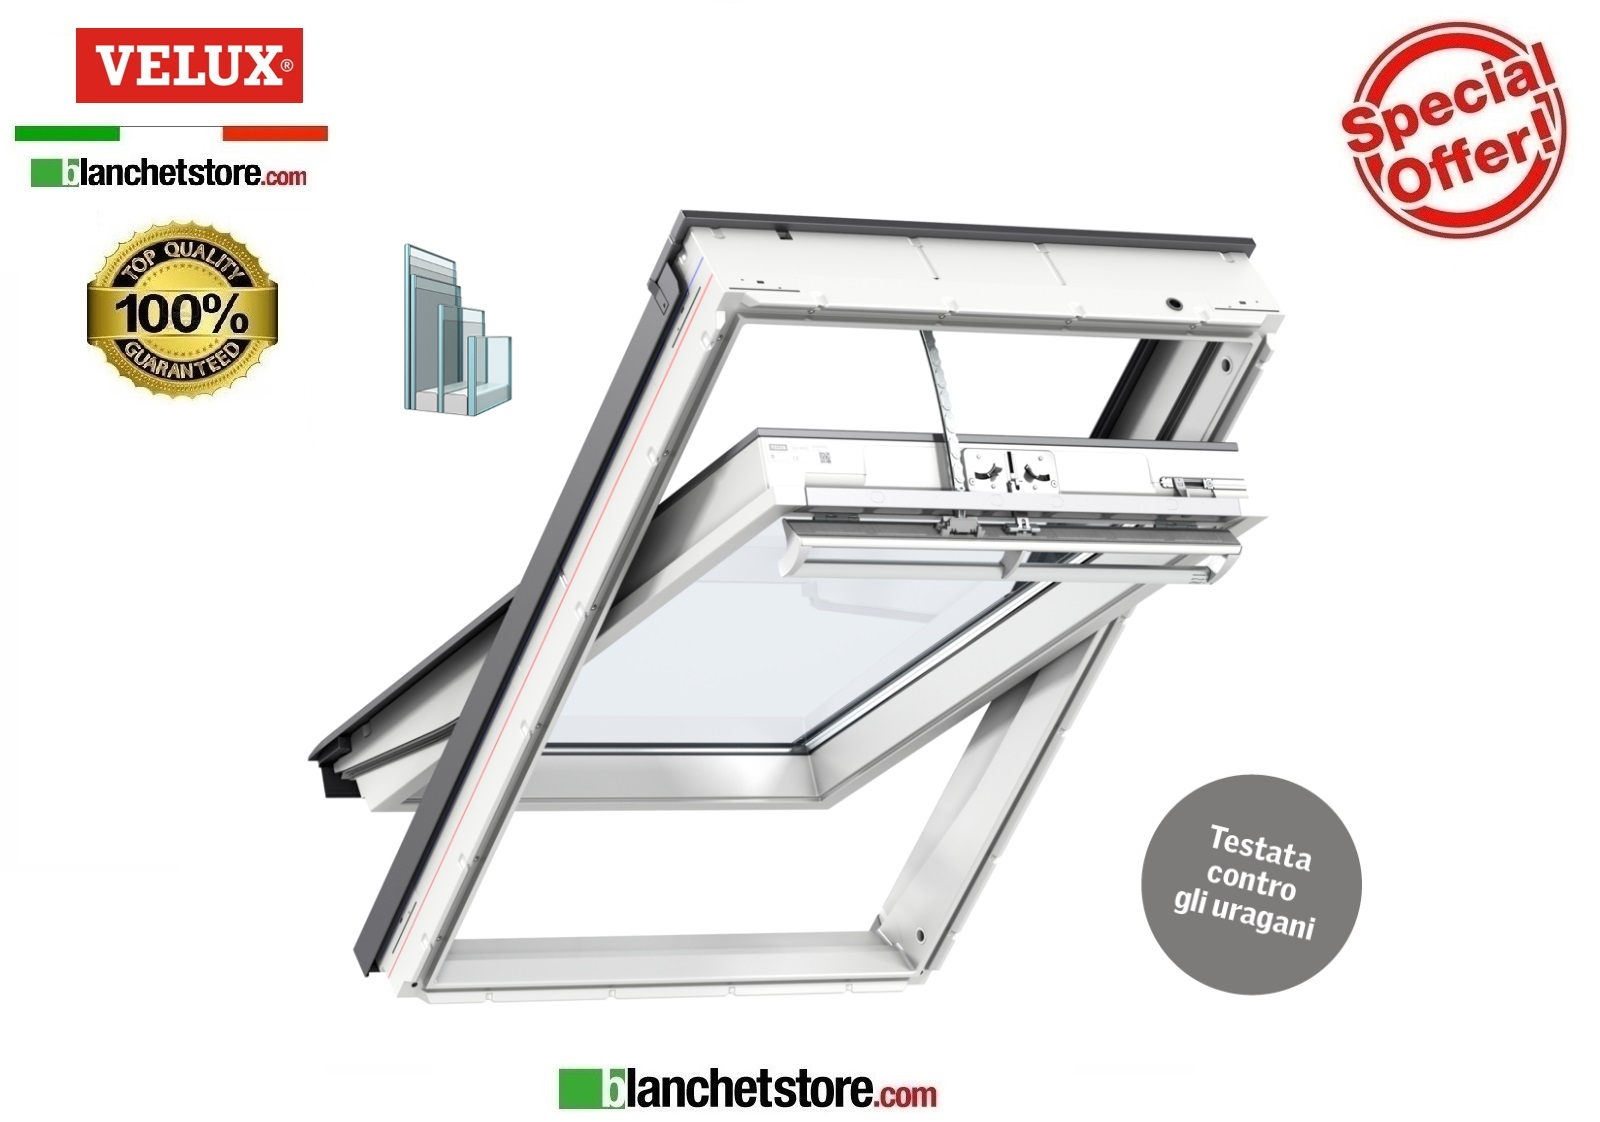 Finestra Velux INTEGRA TRIPLA PROT GGU 008621 UK04 134X98 bianco